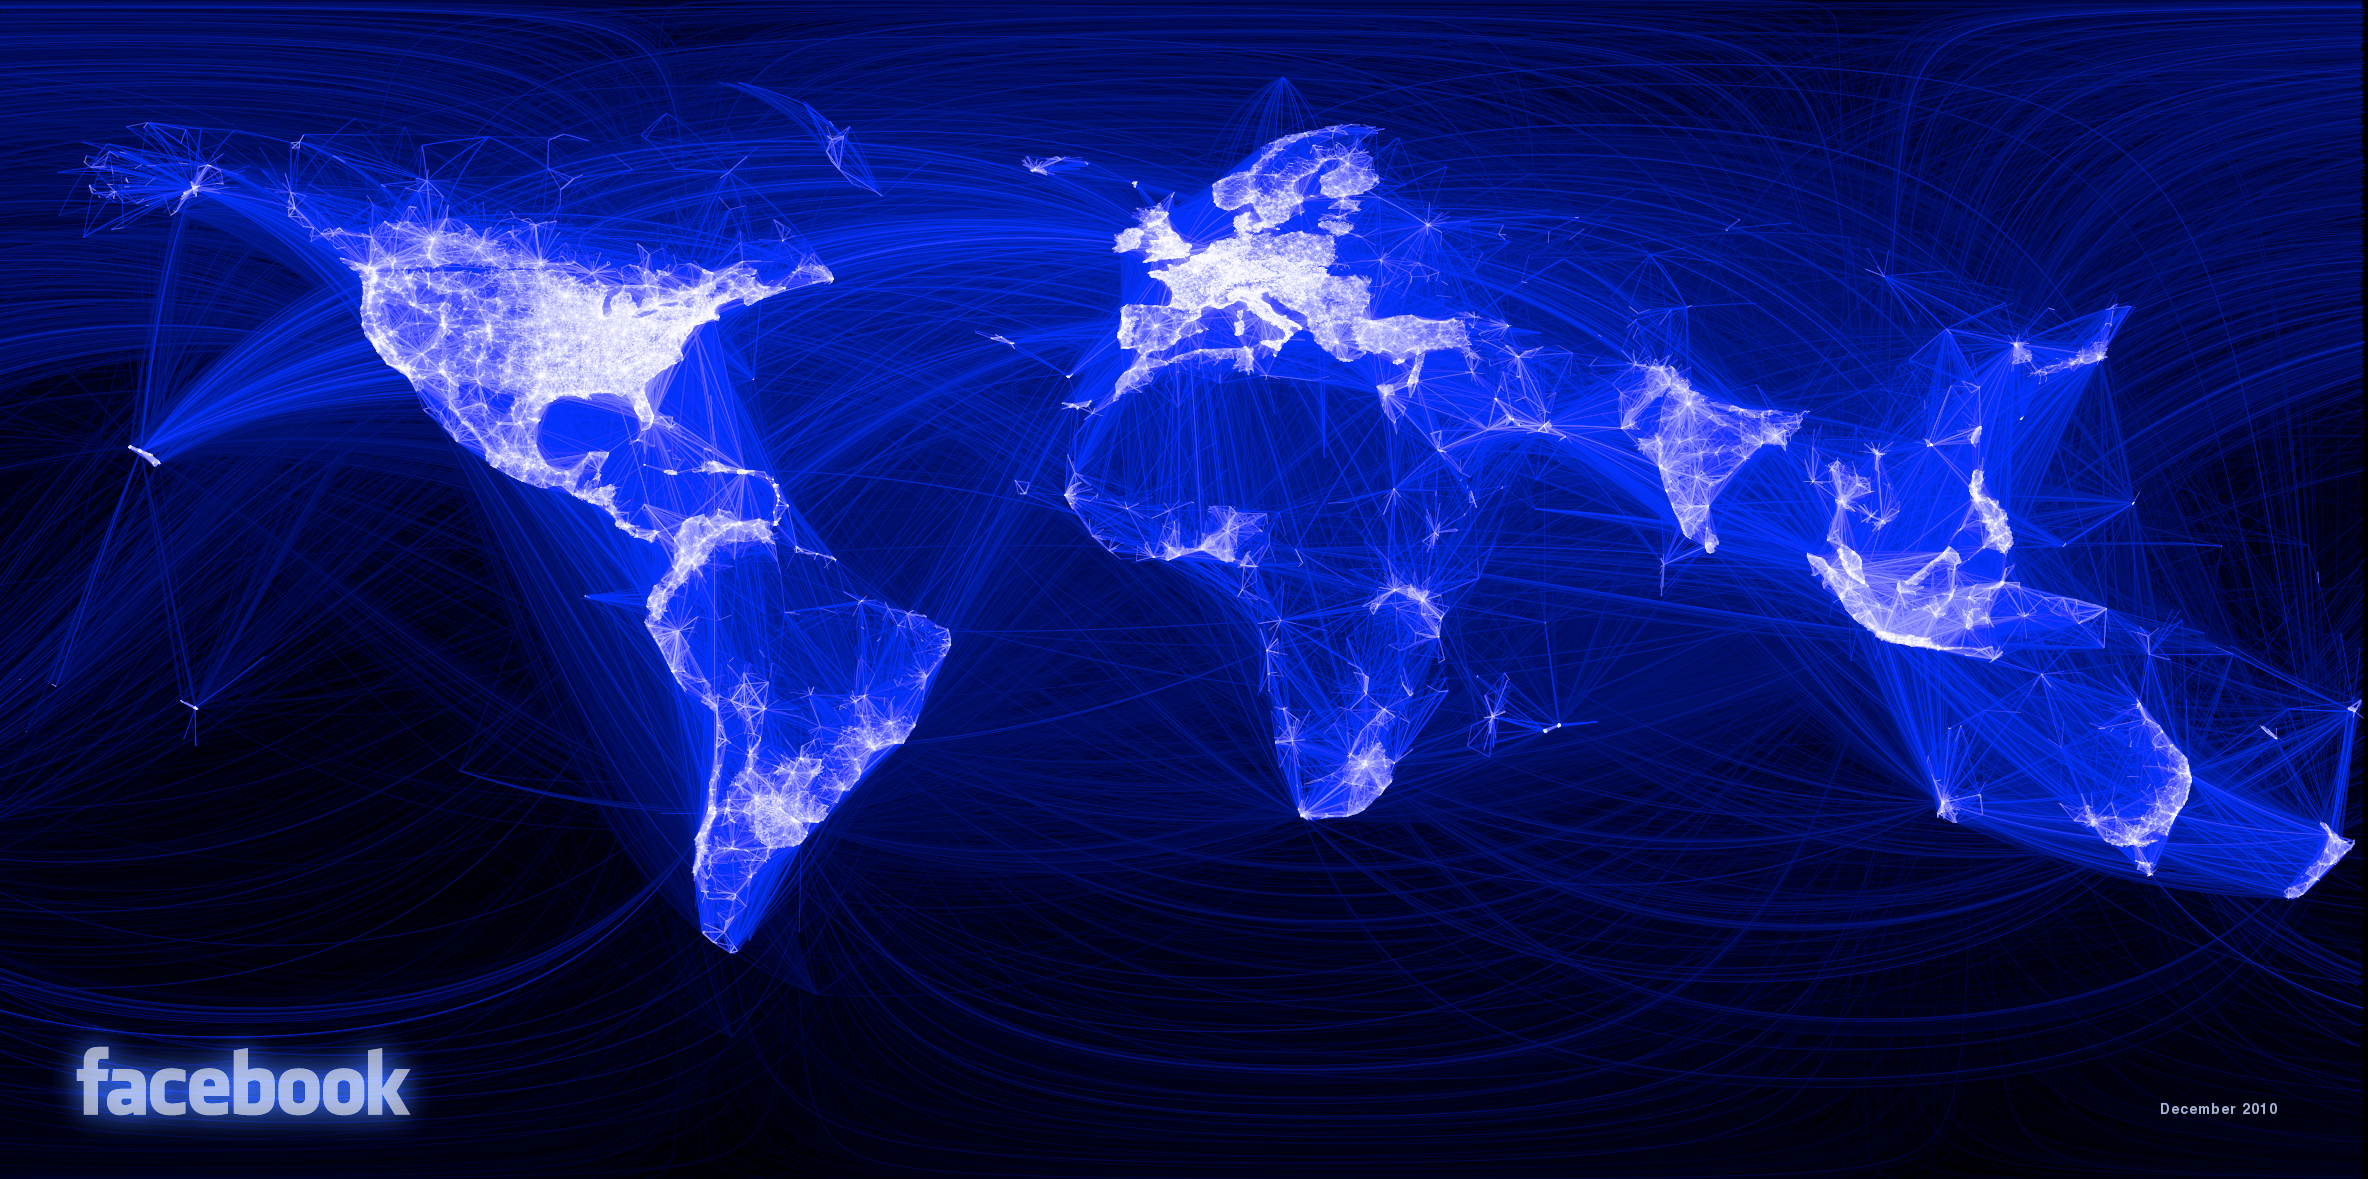 A high-resolution map showing the connections between Facebook's 600 million users in 2010. (Paul Butler/Facebook)